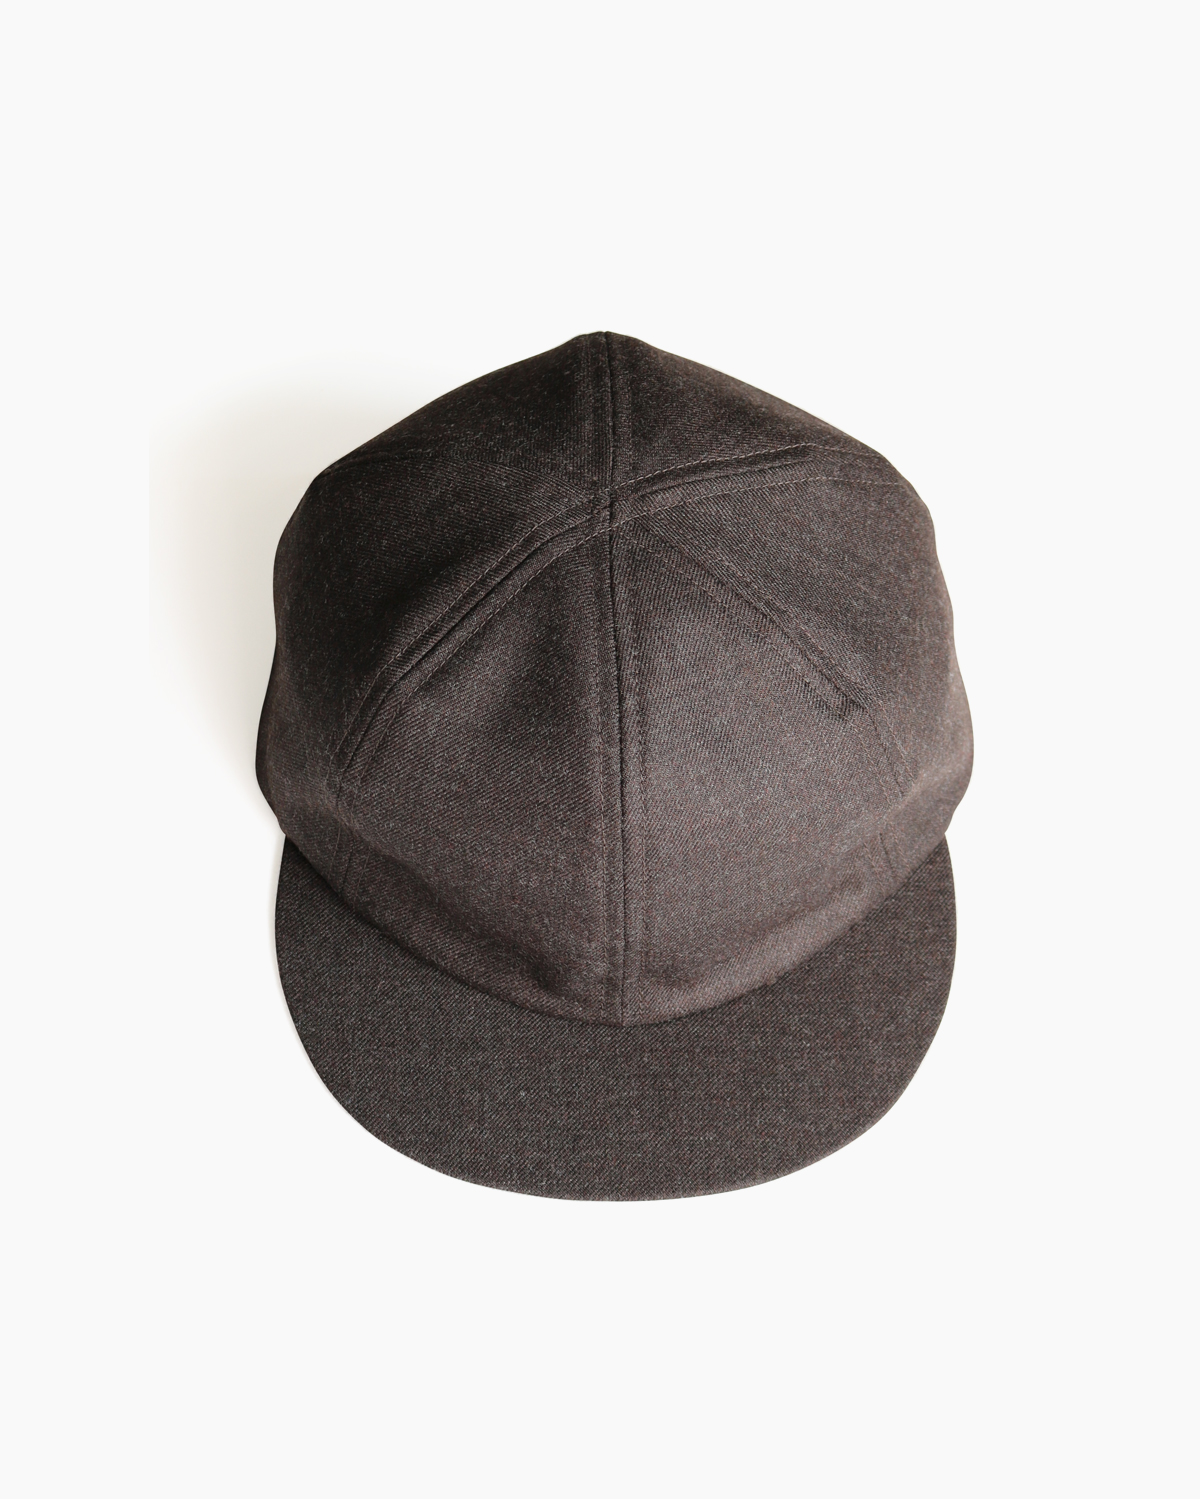 Suit Fabric Little Brim Cap - Khaki Brown|COMESANDGOES